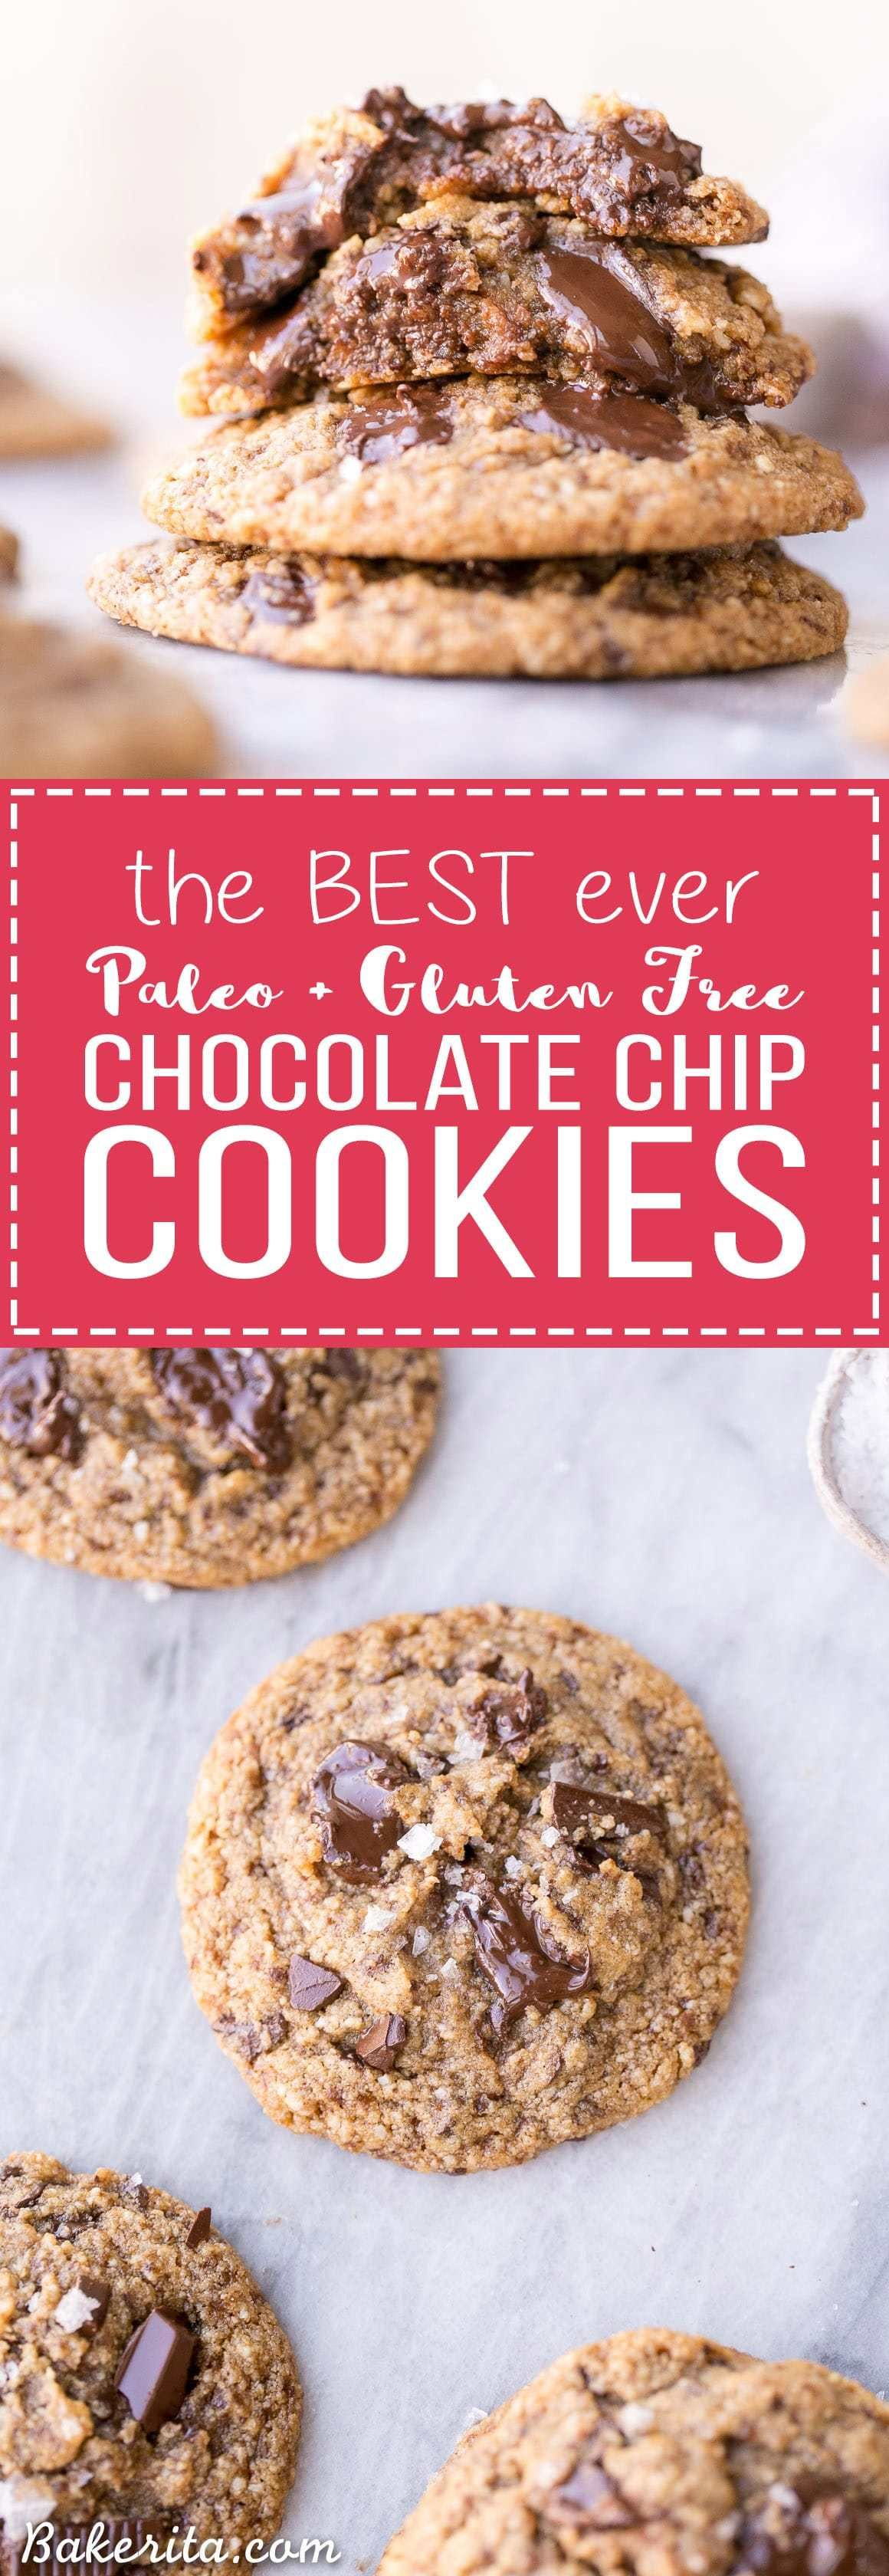 These Paleo Chocolate Chip Cookies totally nail the taste and texture of your favorite classic treat - the taste testers who tried these had no idea they were Paleo! These gluten-free, dairy free, refined sugar-free chocolate chip cookies give you all the comfort without the guilt.